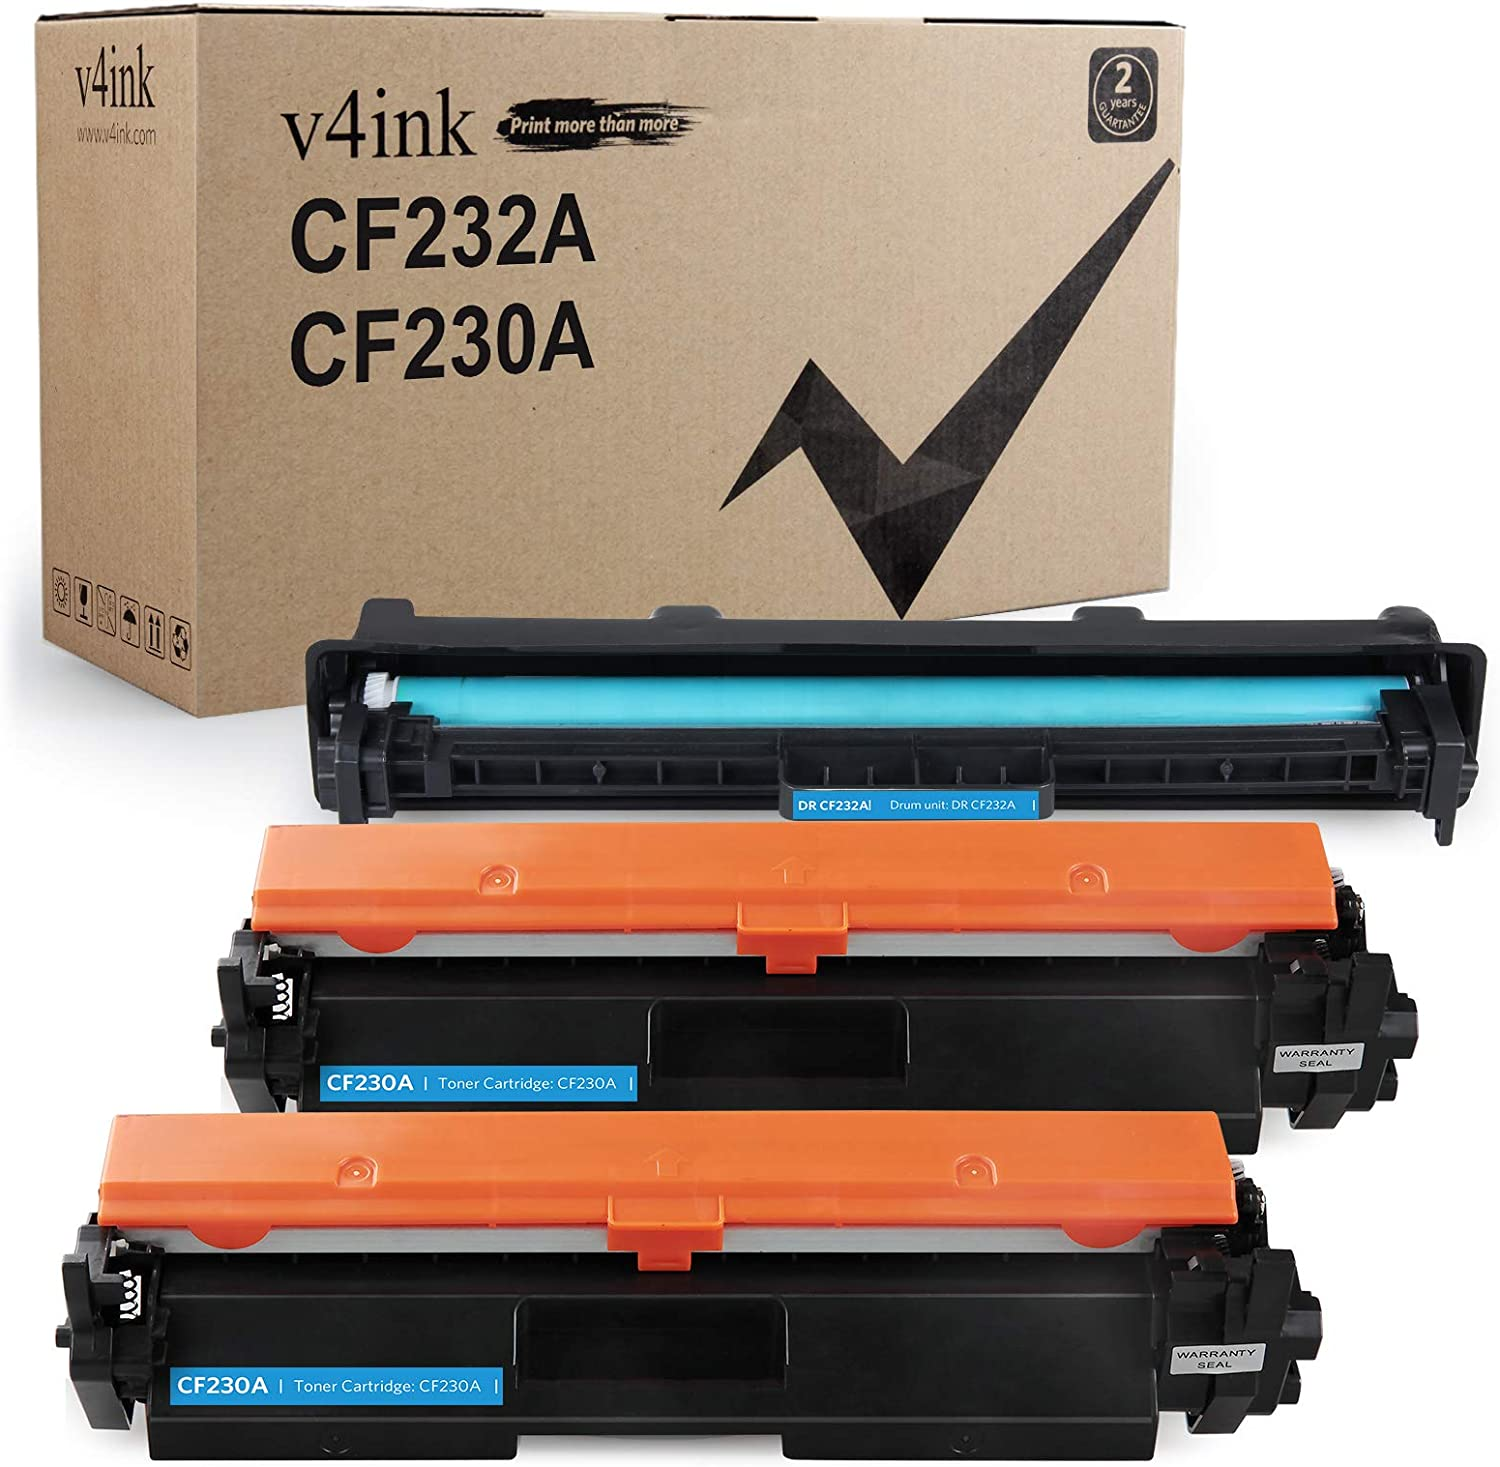 V4INK 3PK Compatible Replacement for HP 30A 32A CF230A Toner Cartridge CF232A Drum Black Set for HP Laserjet Pro MFP M227fdw M227fdn M227sdn M227 M203dw M203d M203dn M203 Printer – 1xDrum + 2xToners